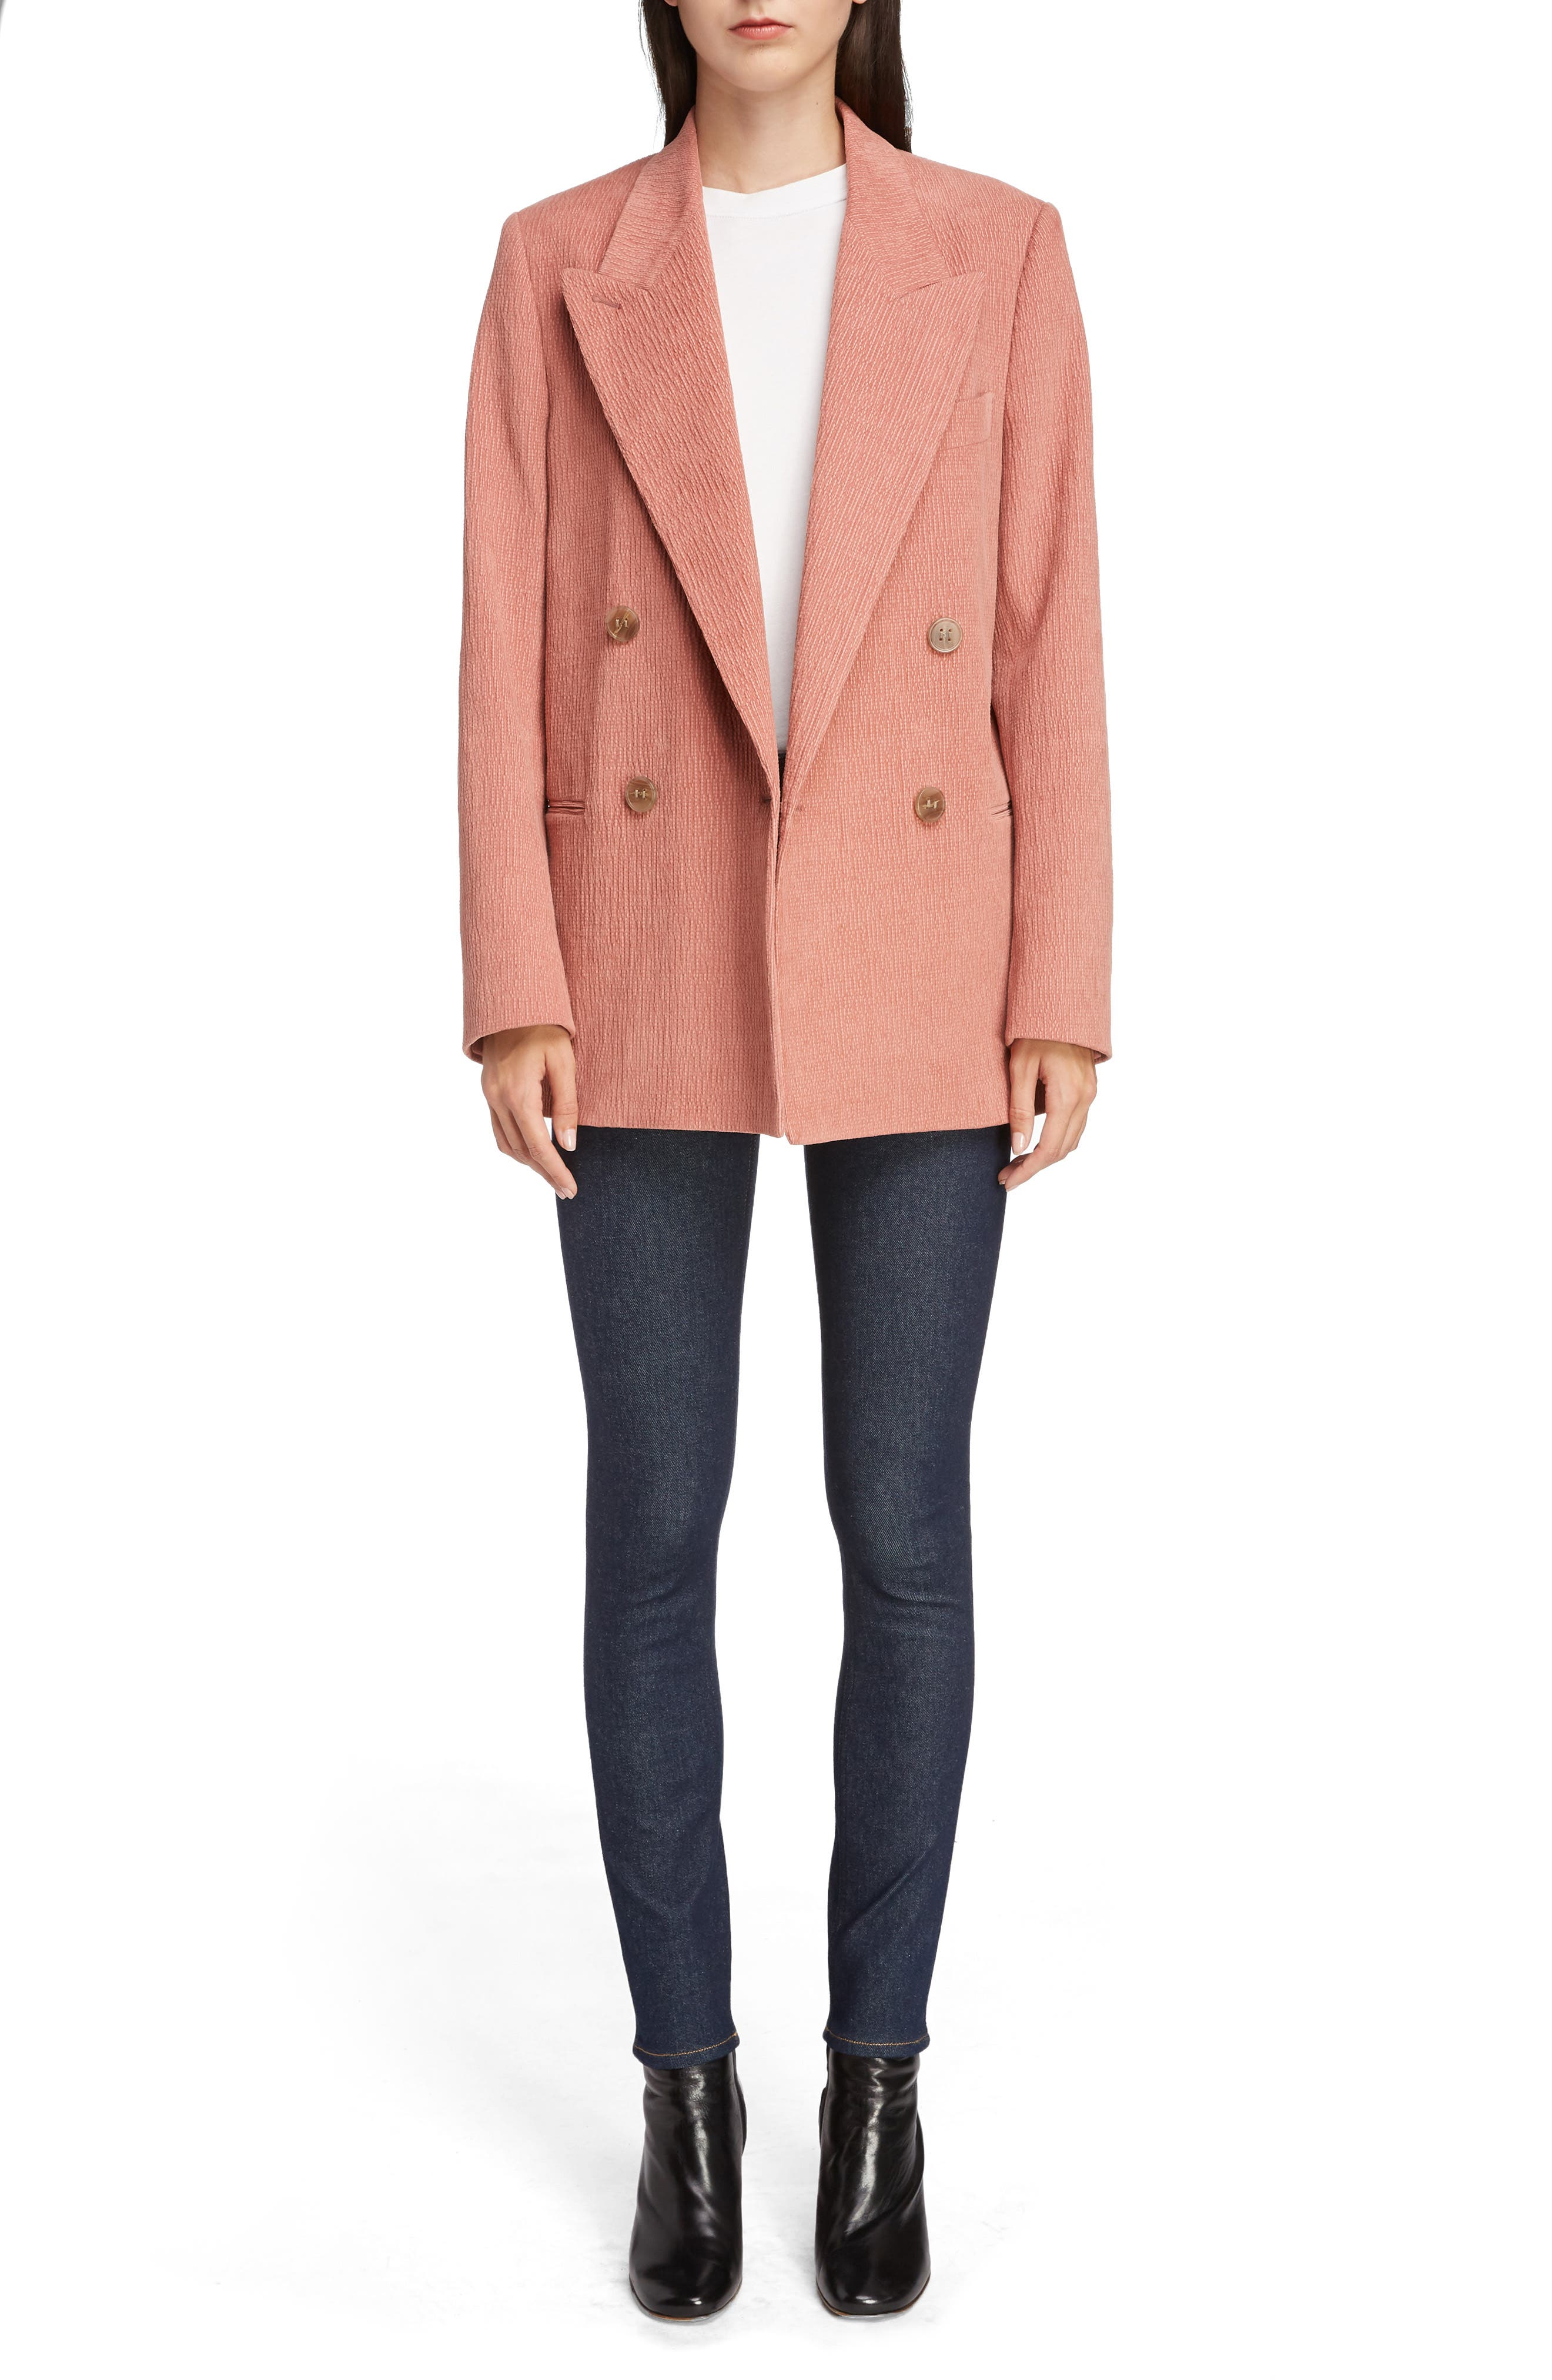 ACNE STUDIOS,                             Corduroy Double Breasted Blazer,                             Alternate thumbnail 6, color,                             OLD PINK